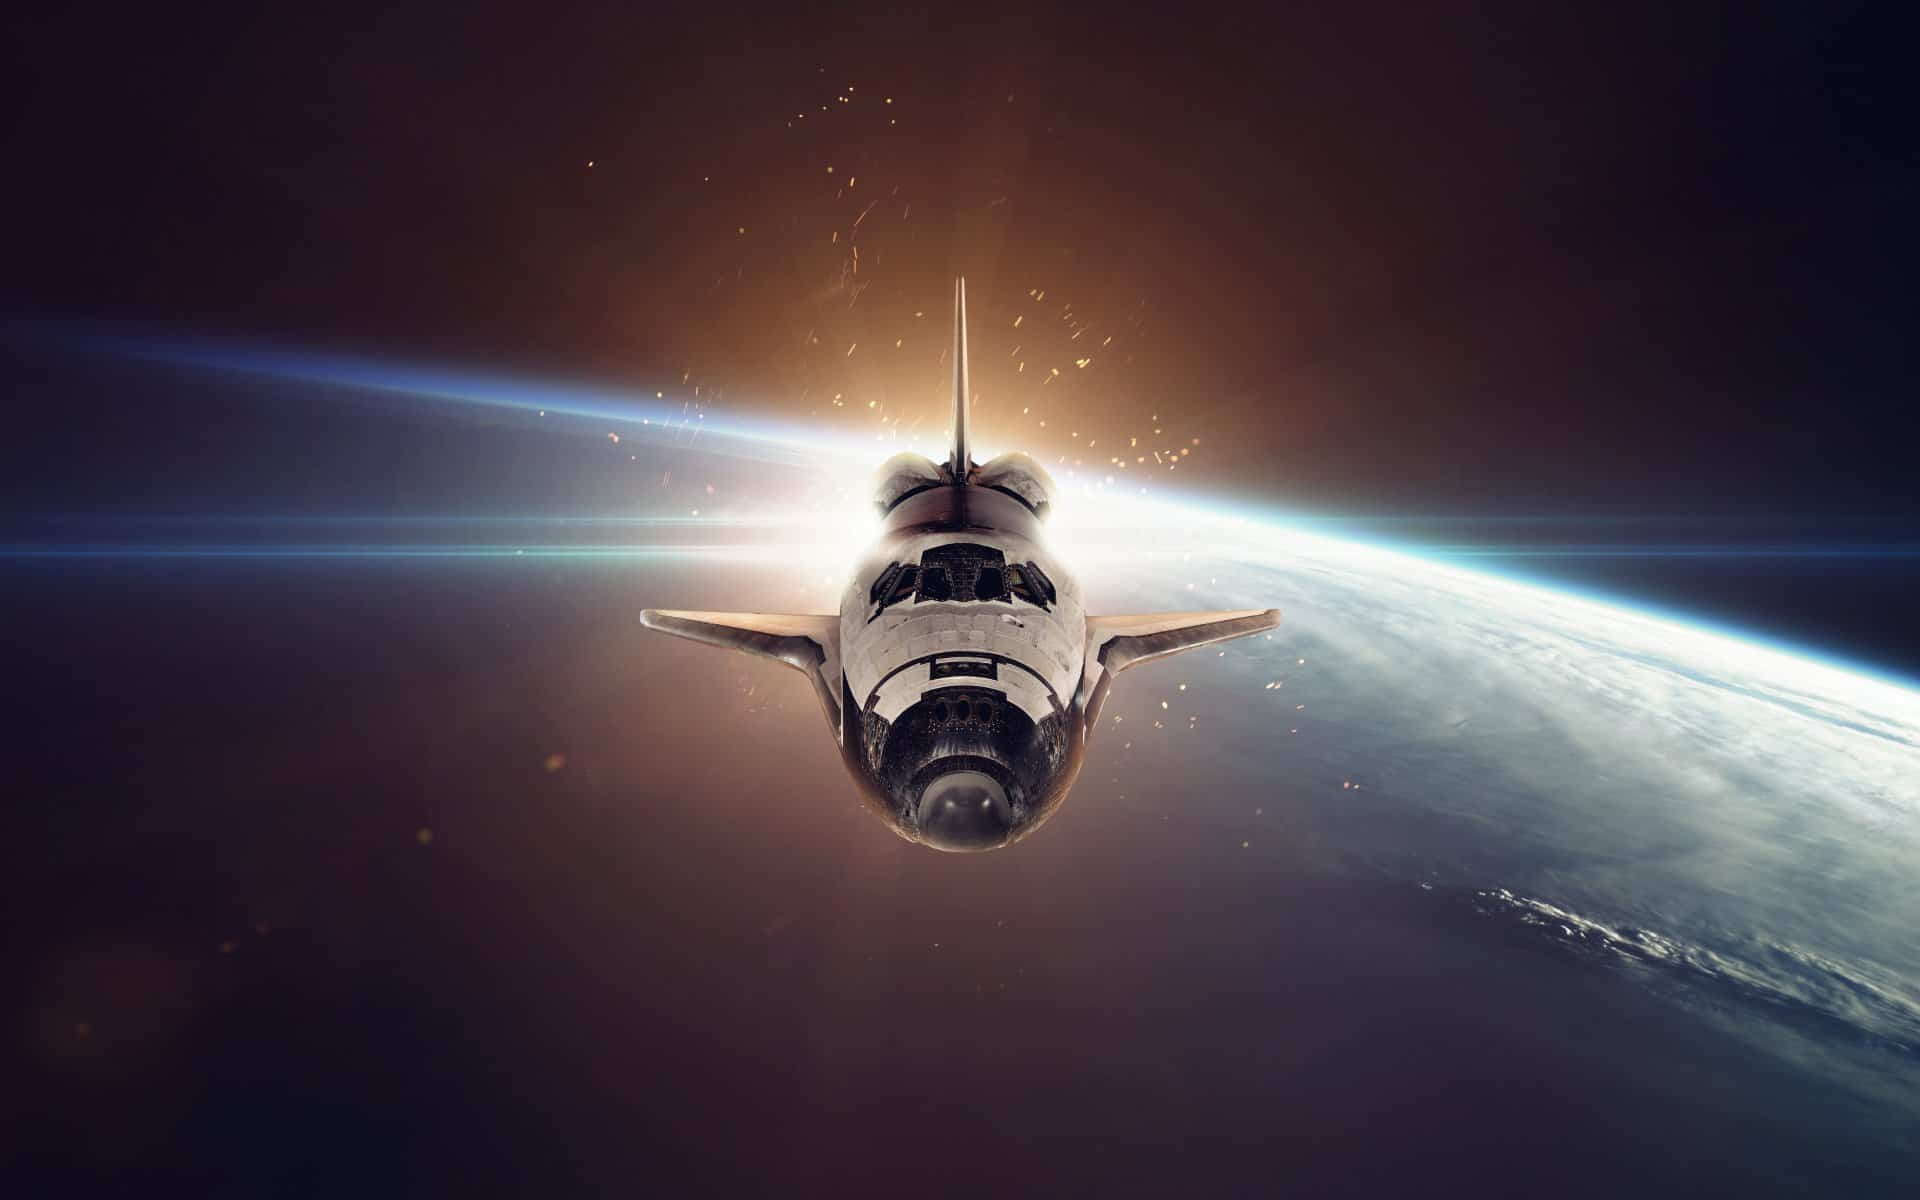 space shuttle quotes - photo #28